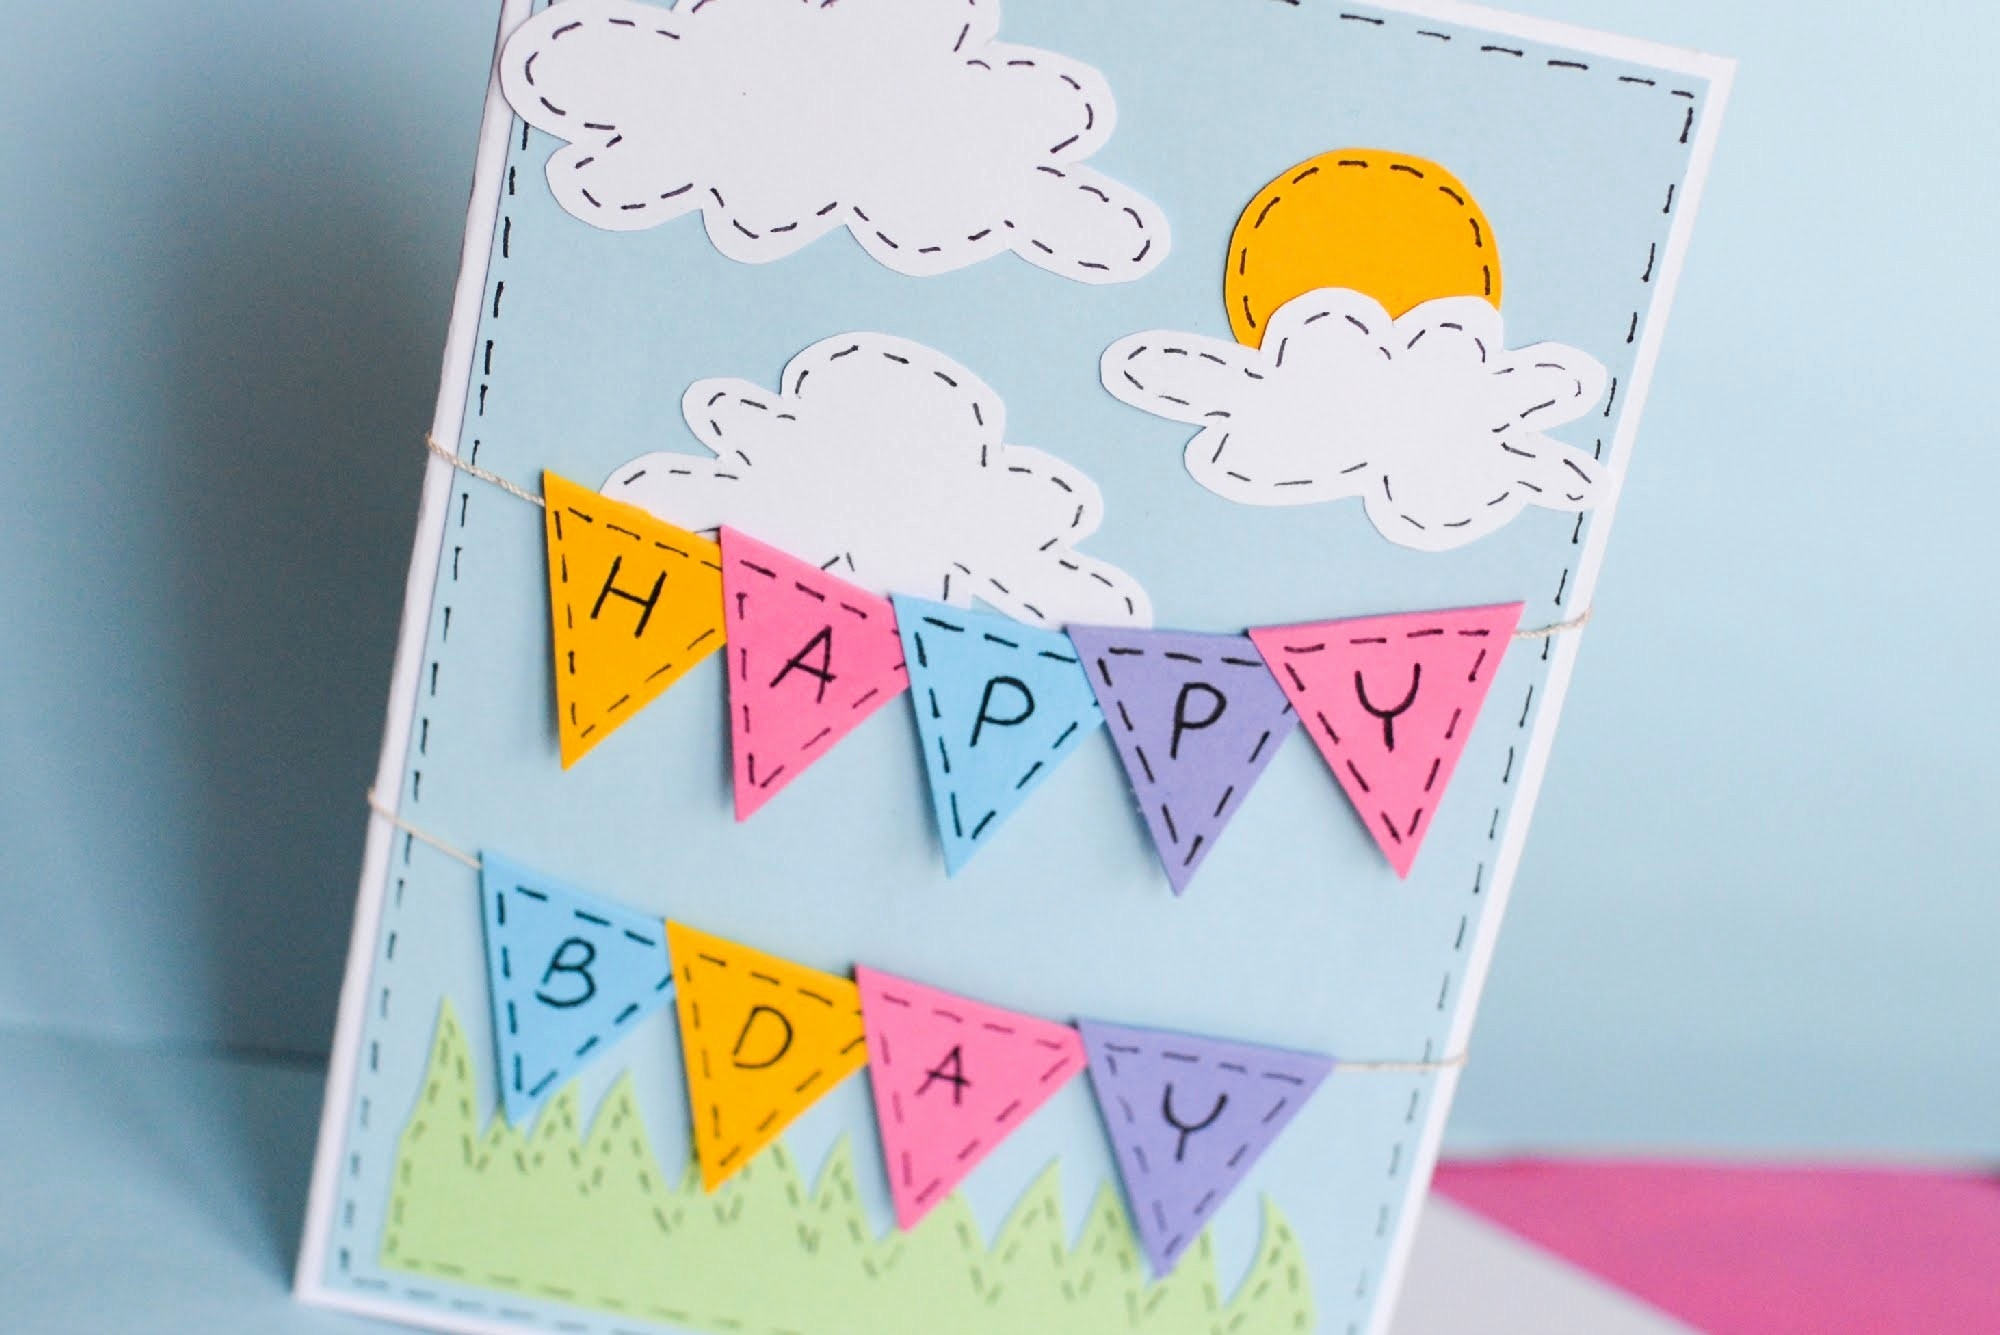 send birthday card to cell phone ; send-birthday-card-to-cell-phone-luxury-create-a-birthday-card-modern-decor-in-excess-how-to-make-of-send-birthday-card-to-cell-phone